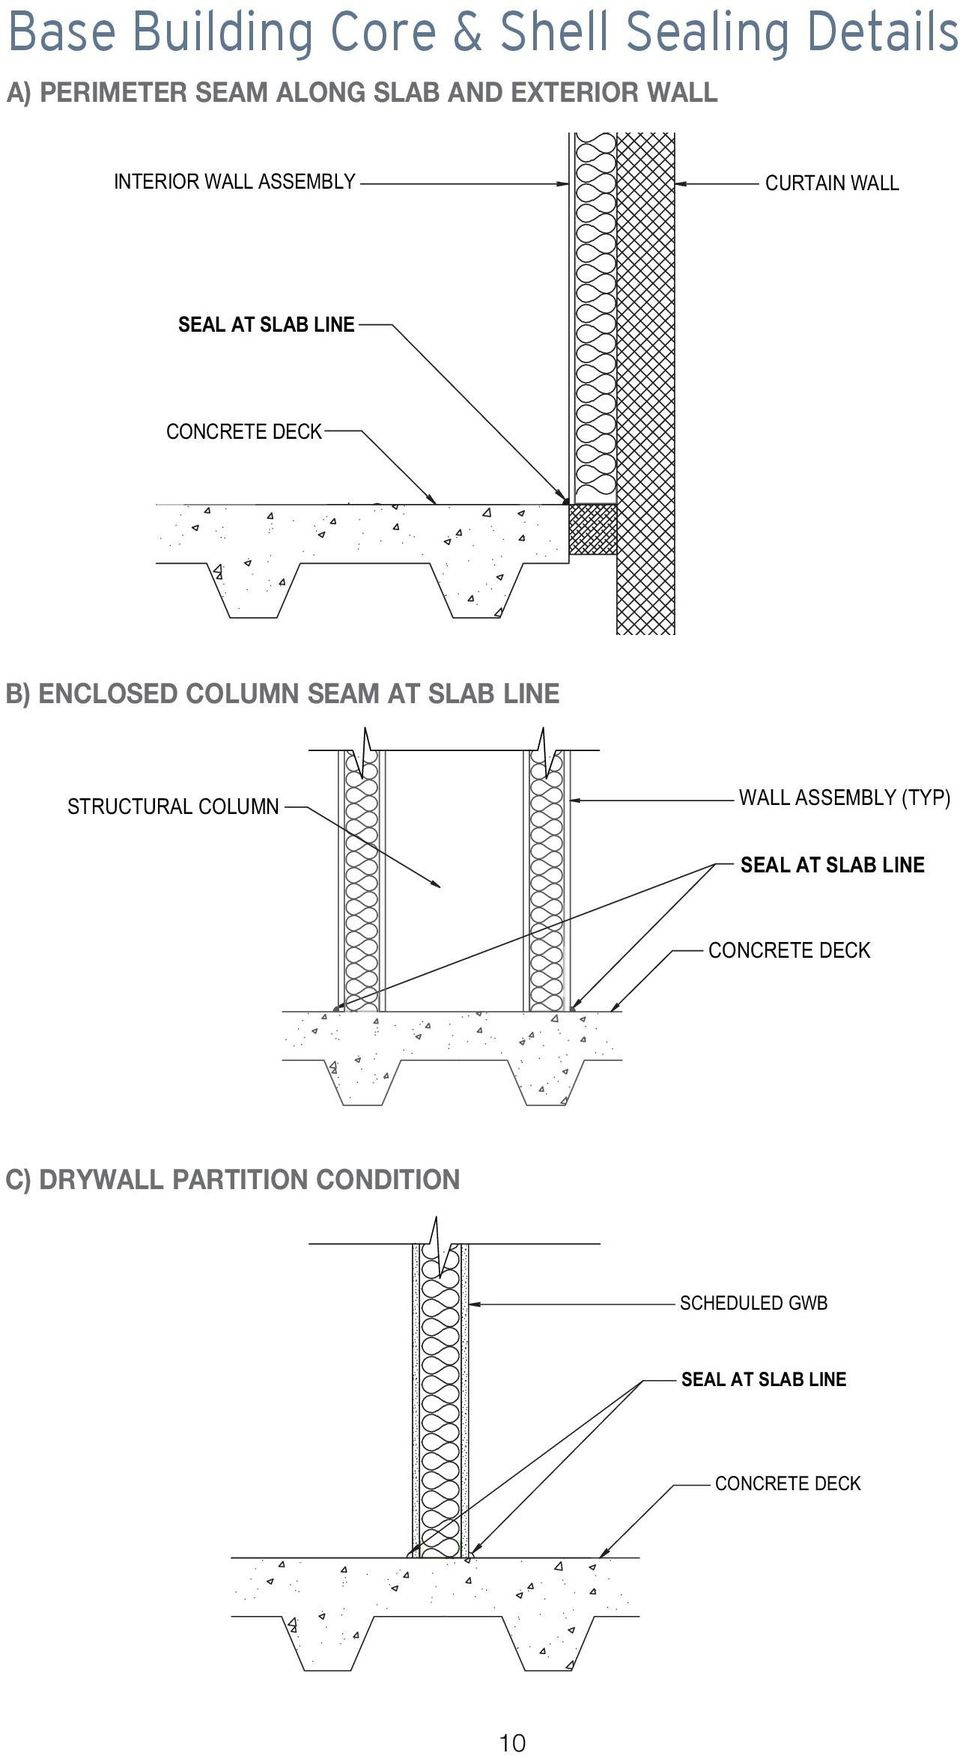 ENCLOSED COLUMN SEAM AT SLAB LINE STRUCTURAL COLUMN WALL ASSEMBLY (TYP)